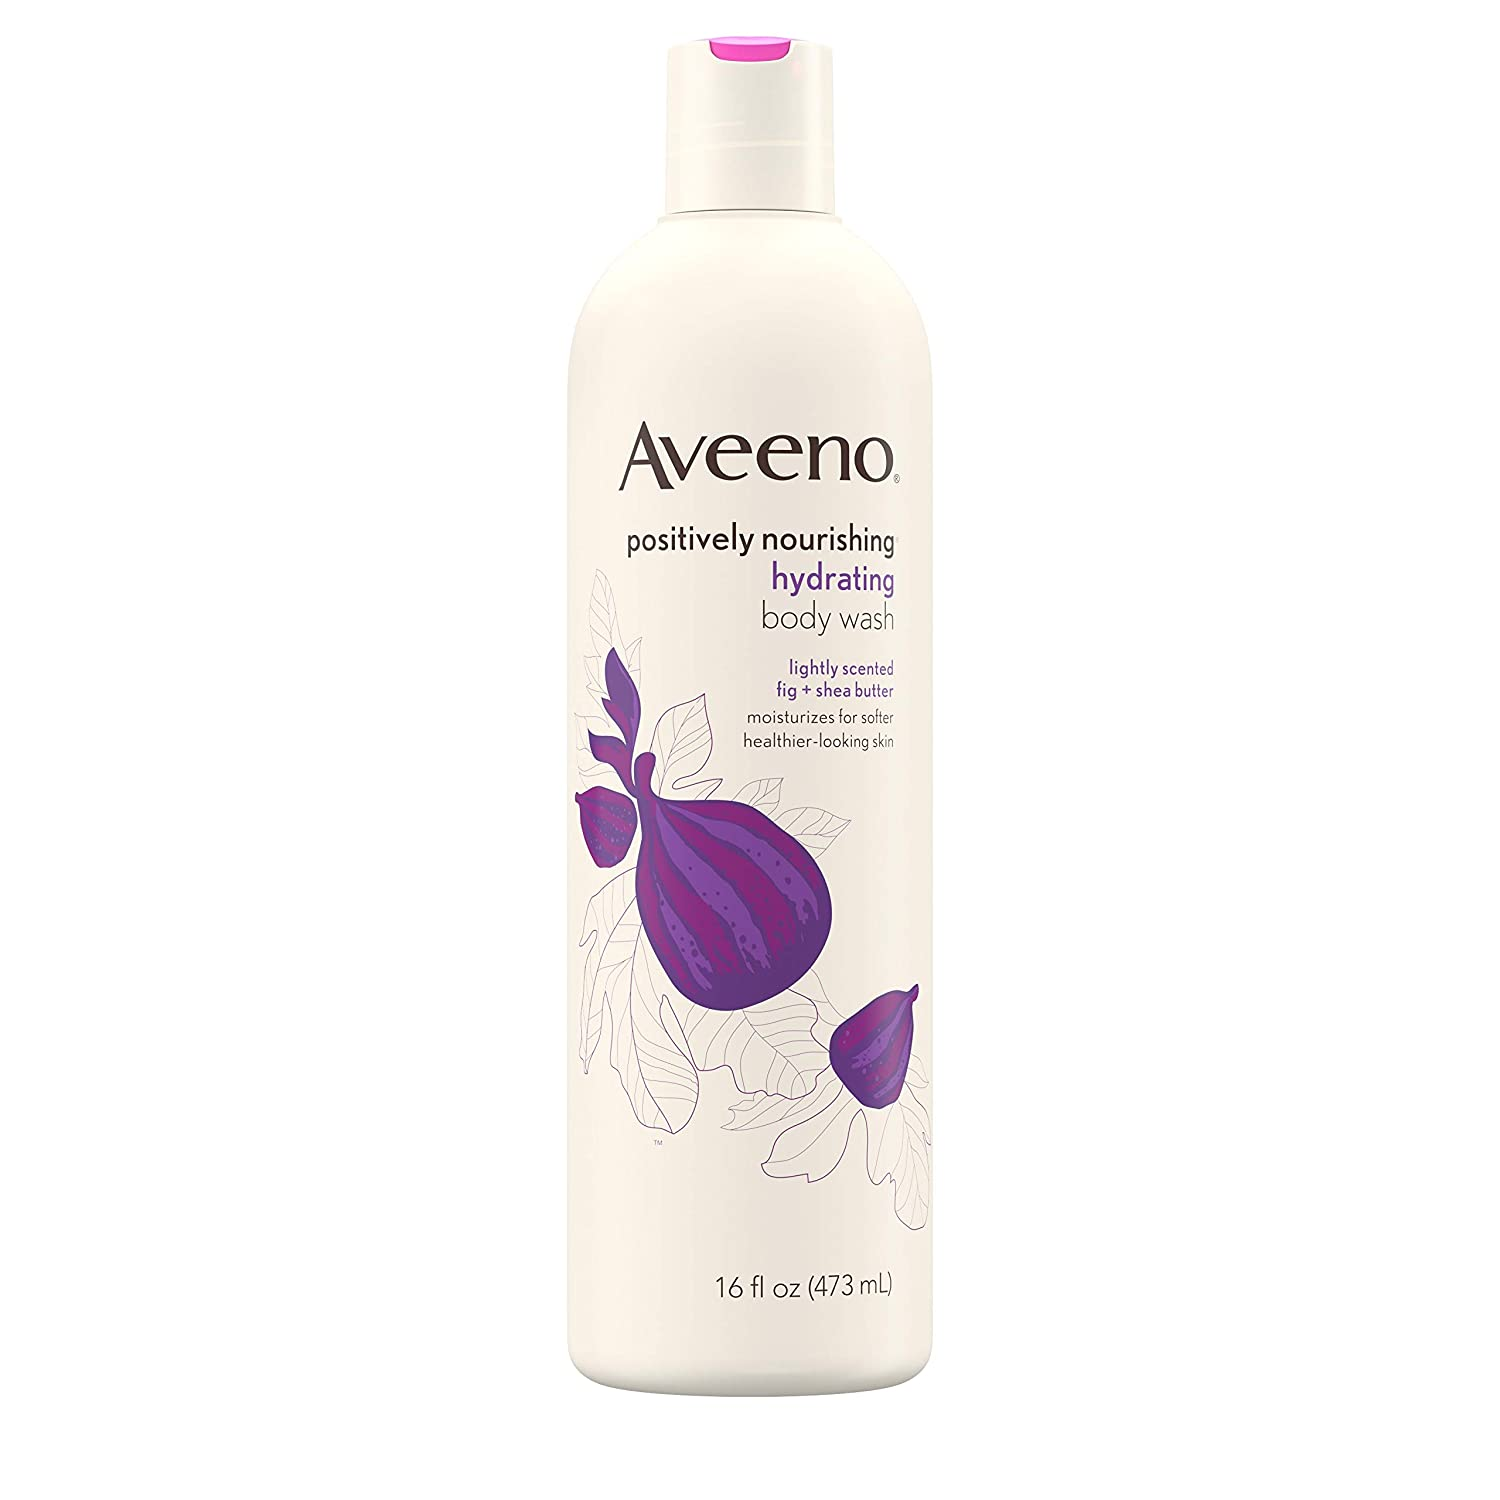 Aveeno Positively Nourishing Hydrating Body Wash for Dry Skin with Natural Fig & Shea Butter